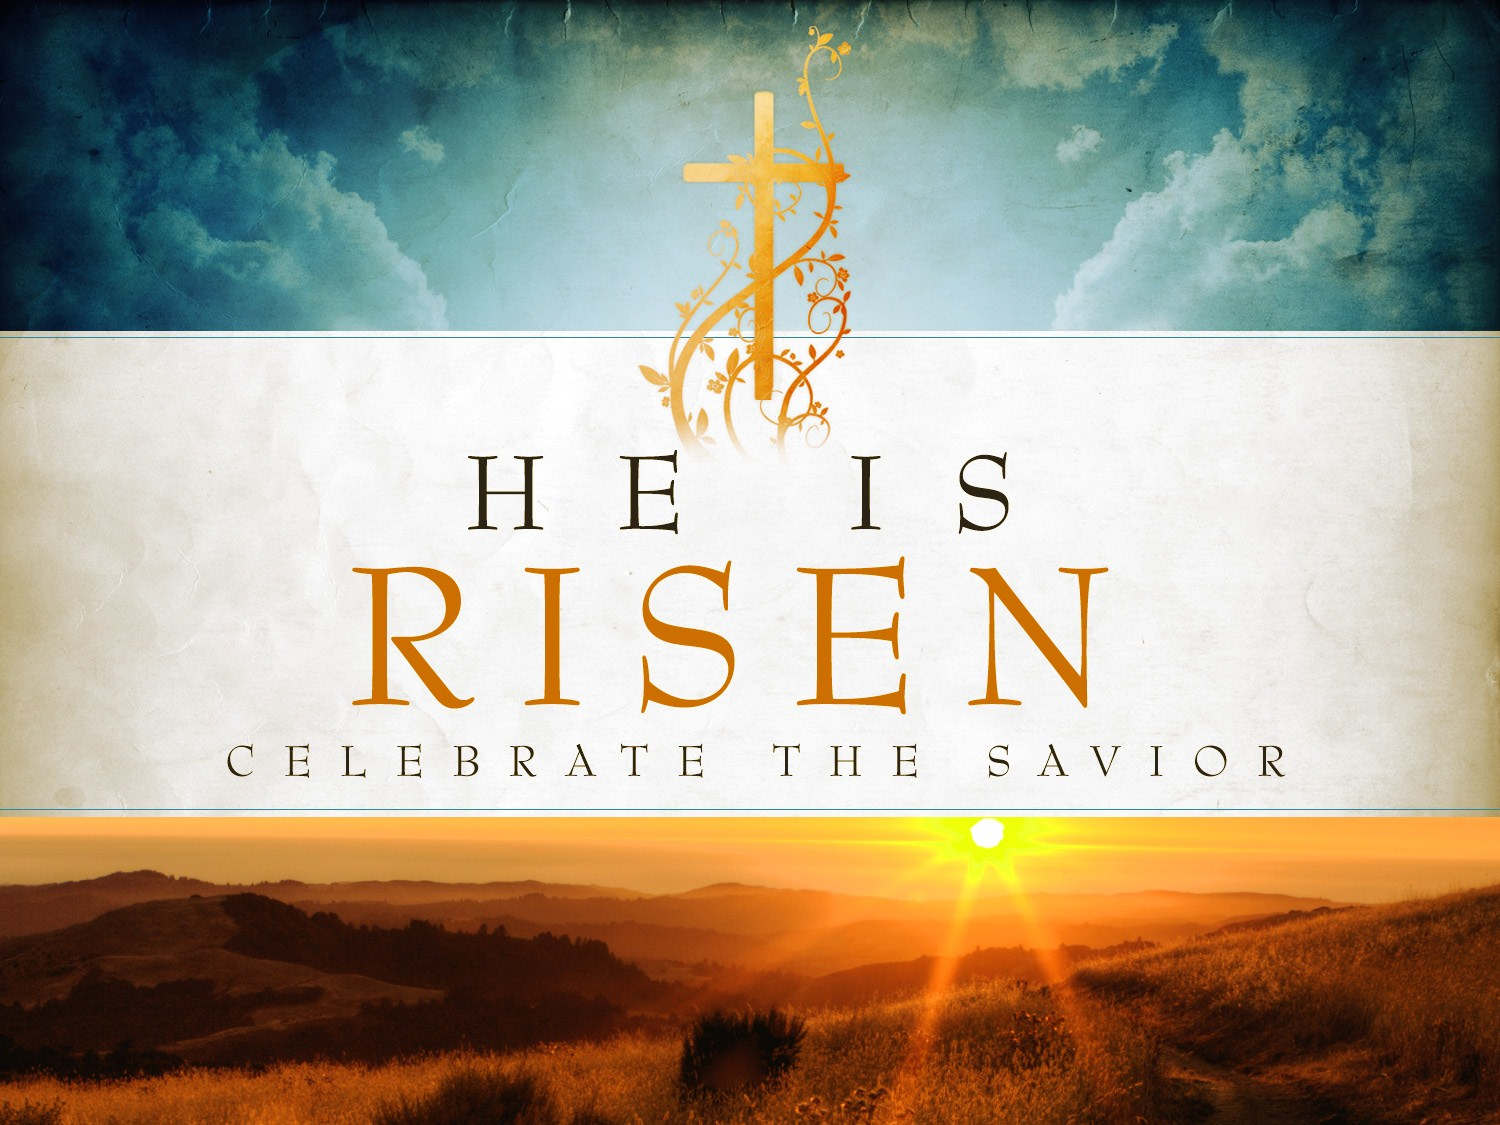 Easter Religious   Large Images 1500x1125